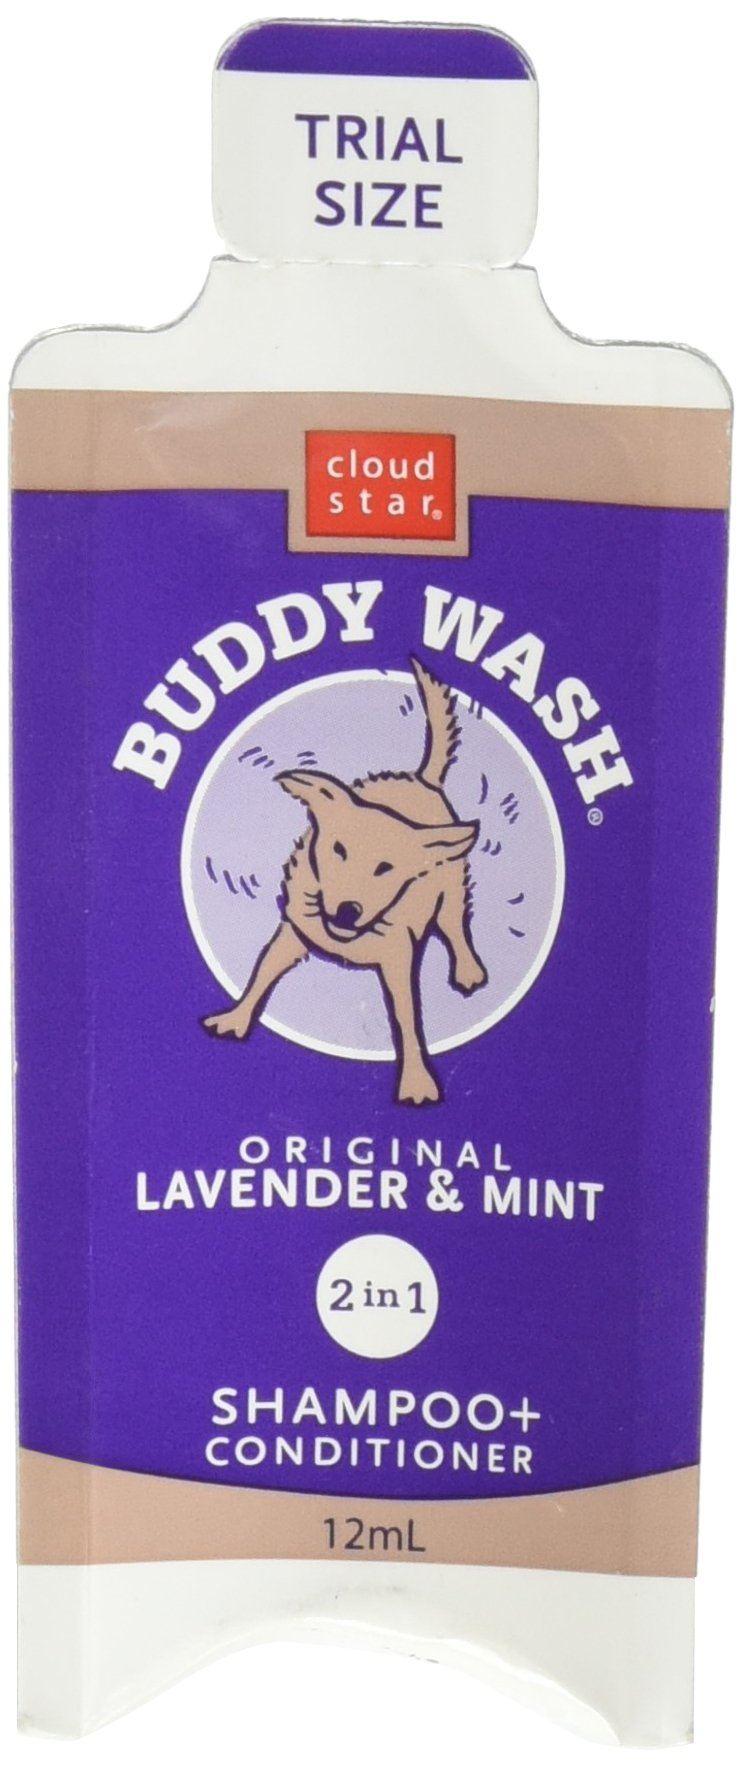 Cloud Star Dog Supplies Buddy Wash Samples Lavender/Mint by Cloud Star